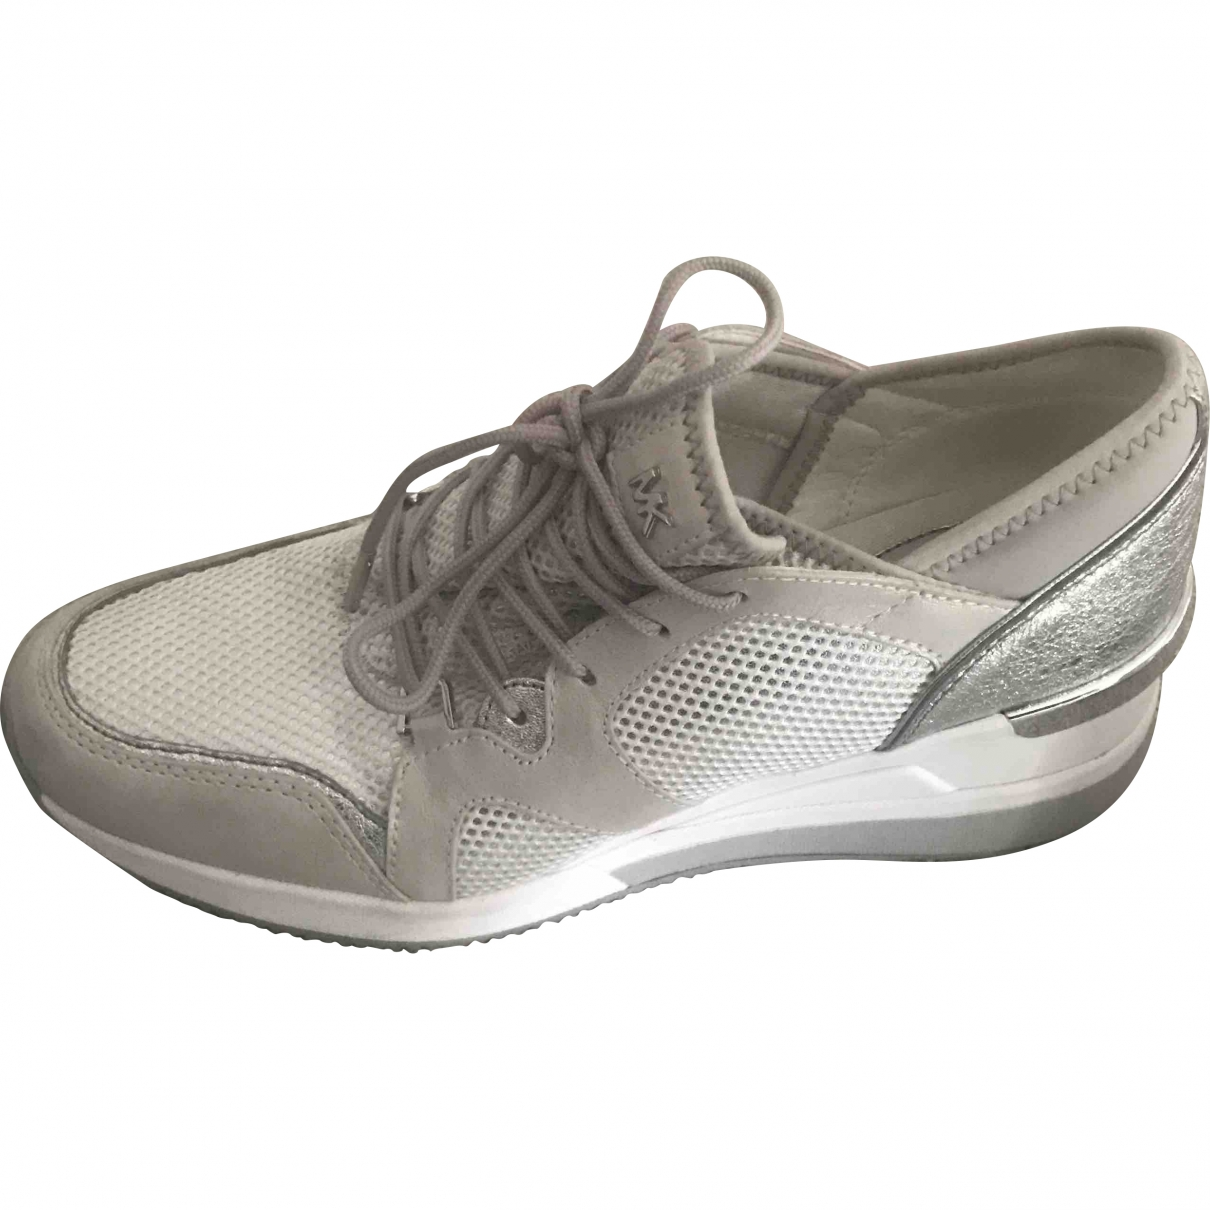 Michael Kors \N White Leather Trainers for Women 5.5 UK